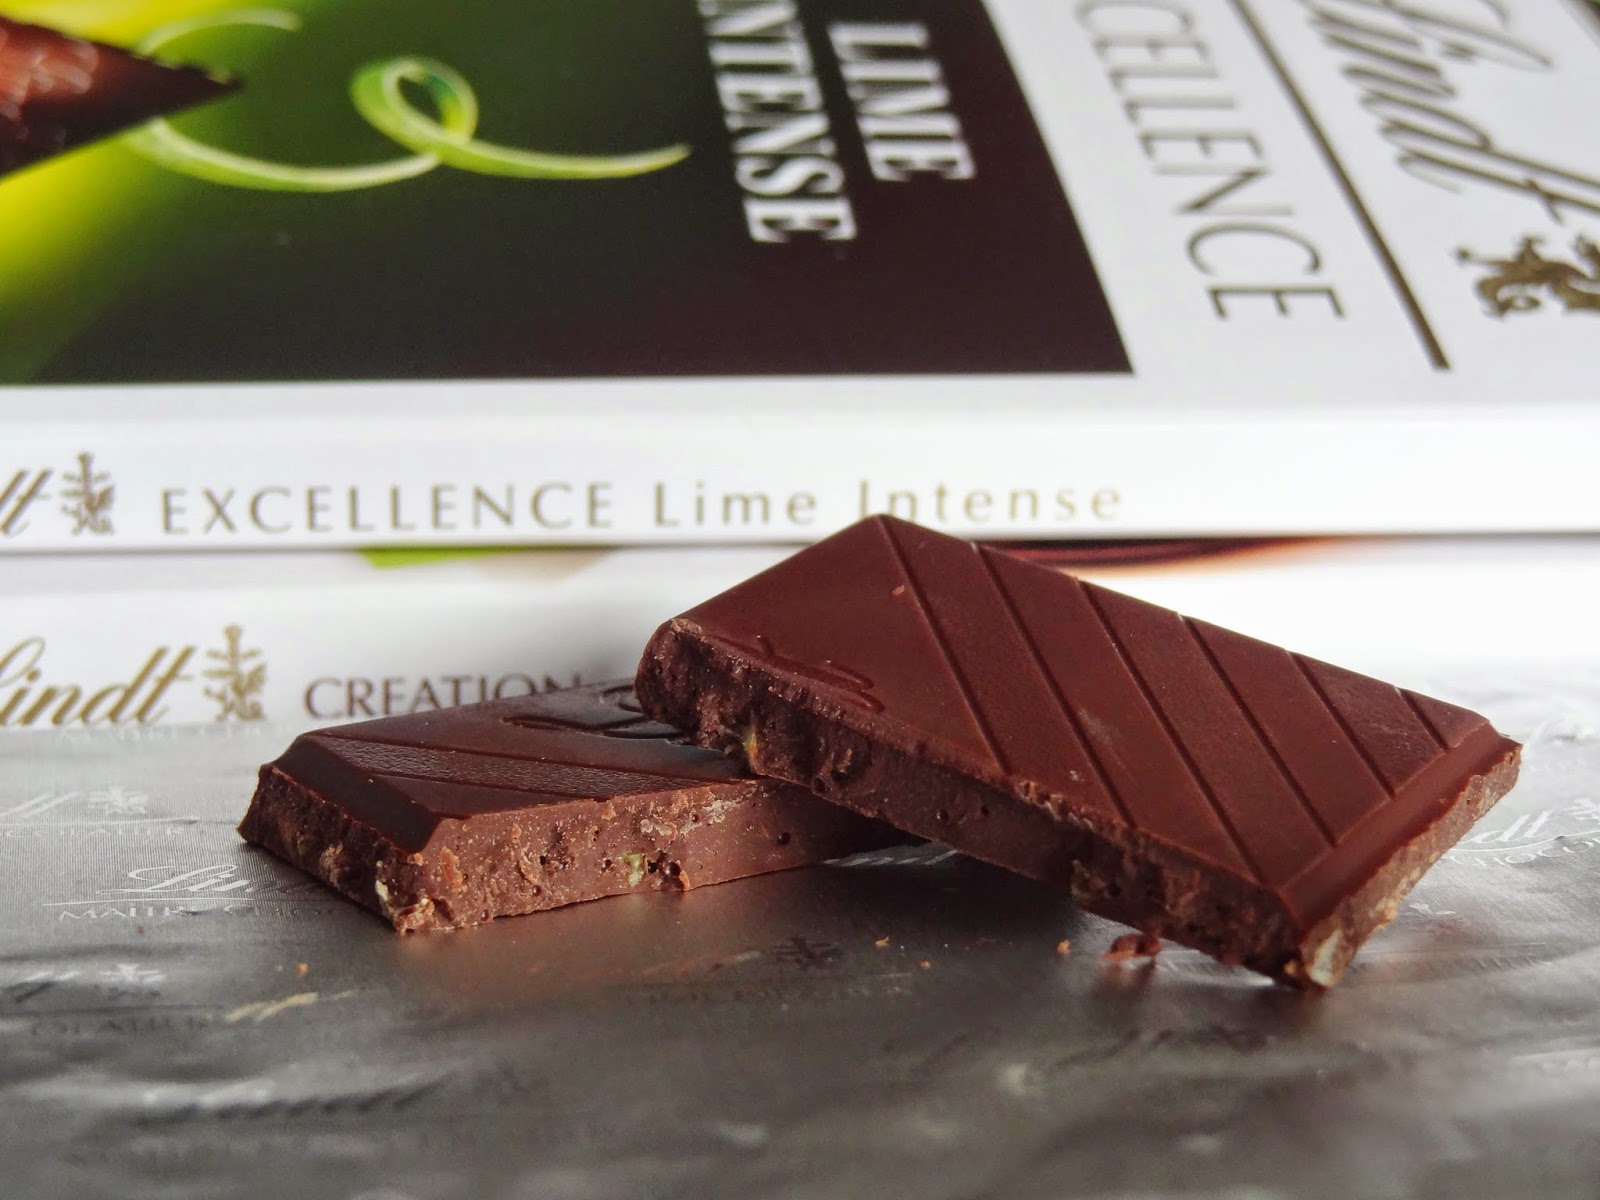 New Lindt Lime Intense Chocolate